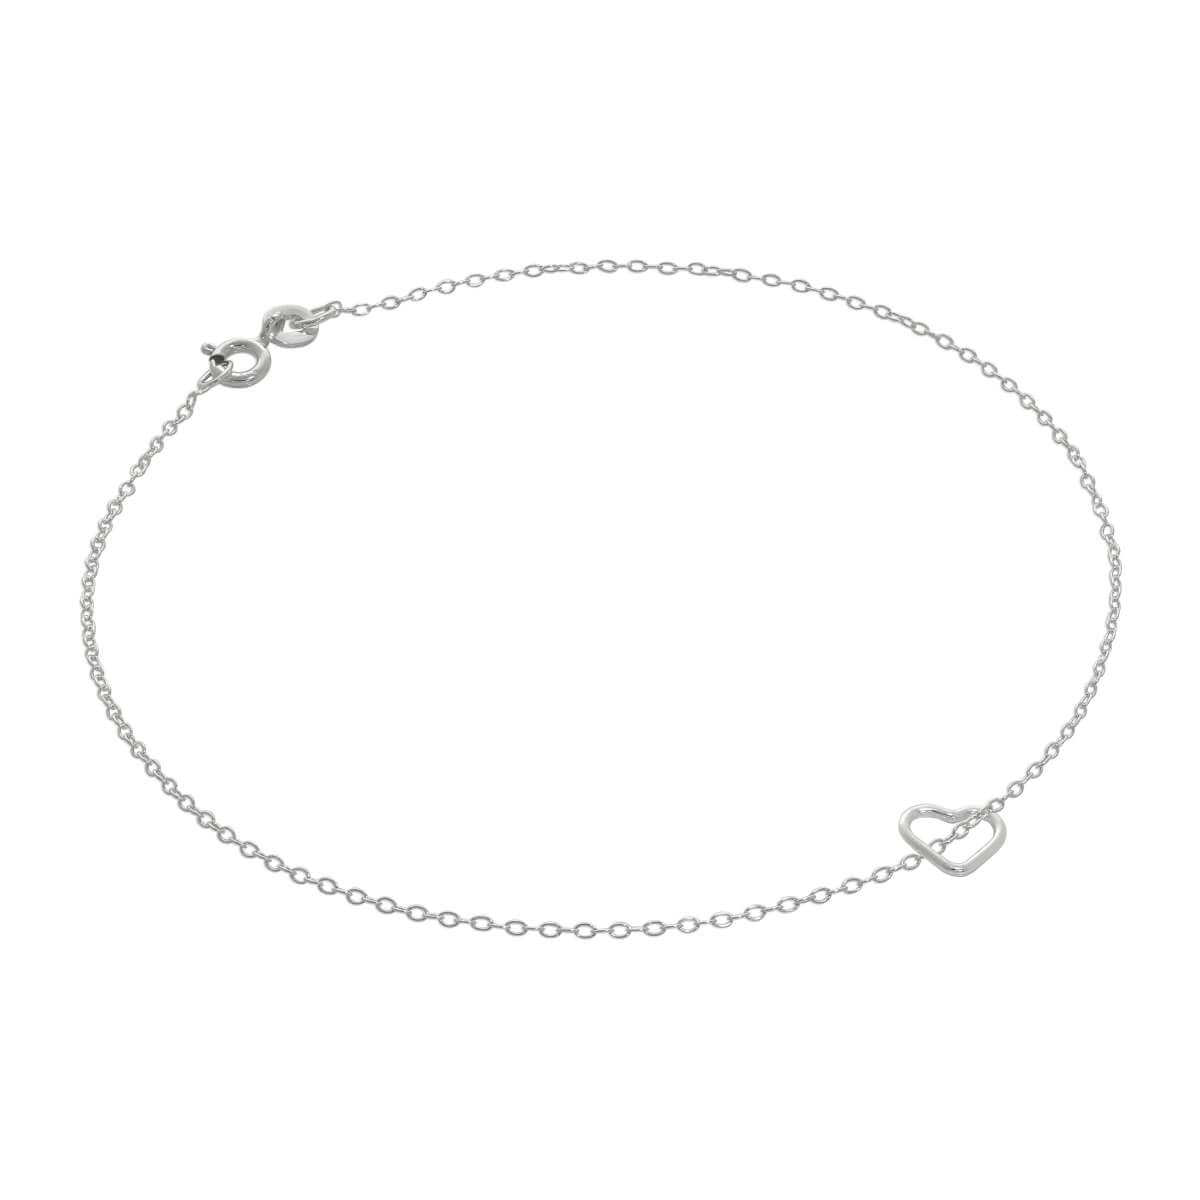 Fine Sterling Silver Belcher Anklet with Tiny Open Heart Charm - 10 Inches